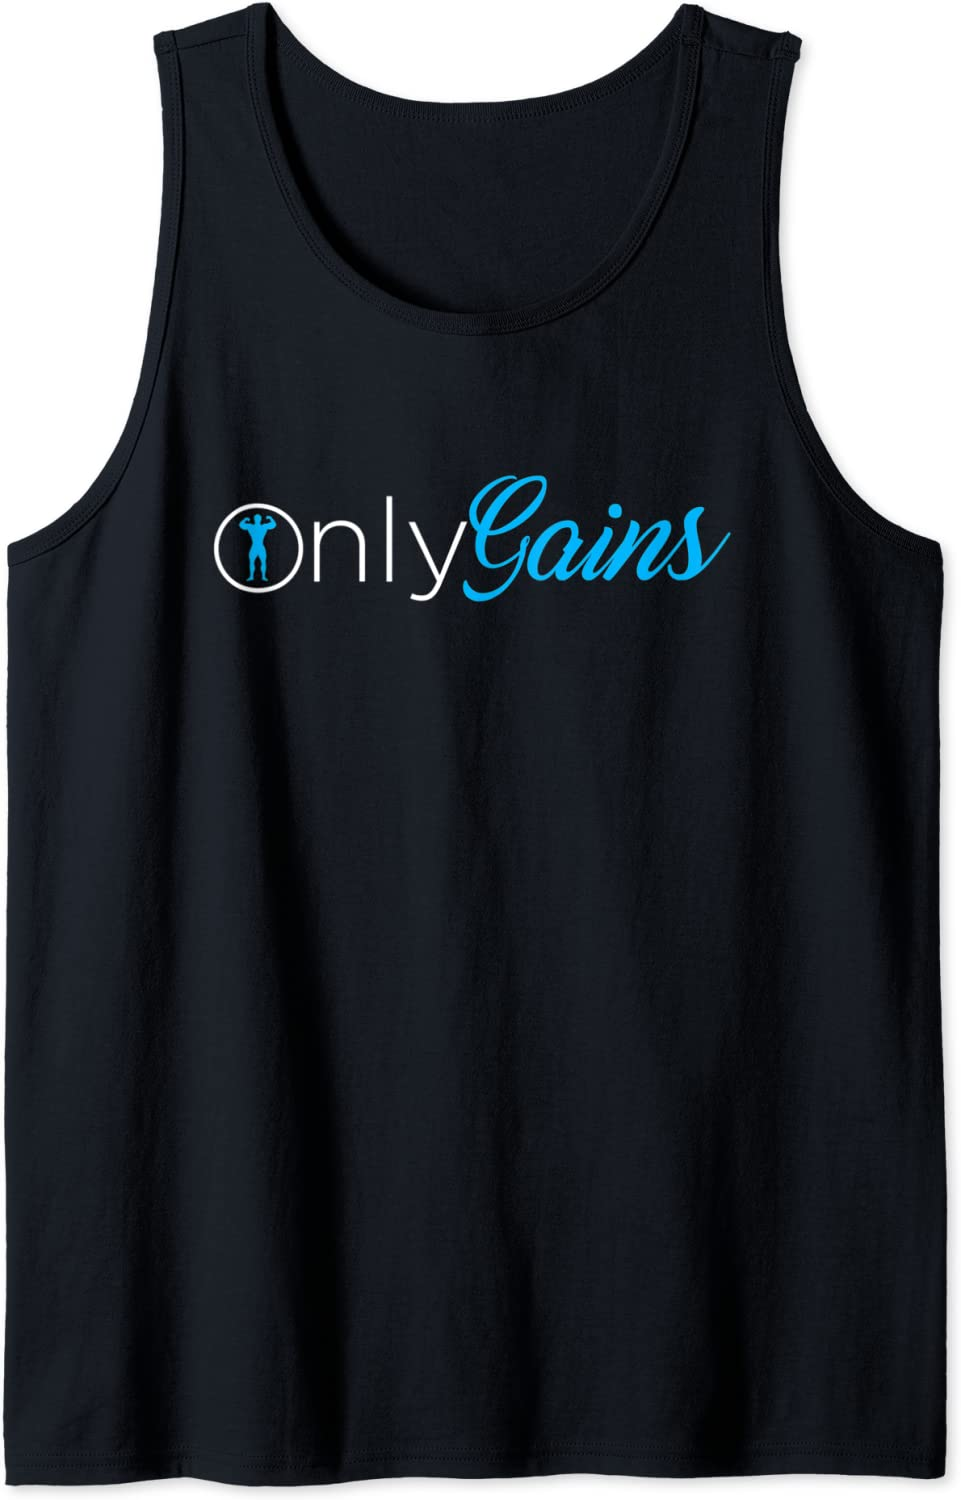 Only Gains OnlyGains sale Funny Tank Top Outlet sale feature Gym